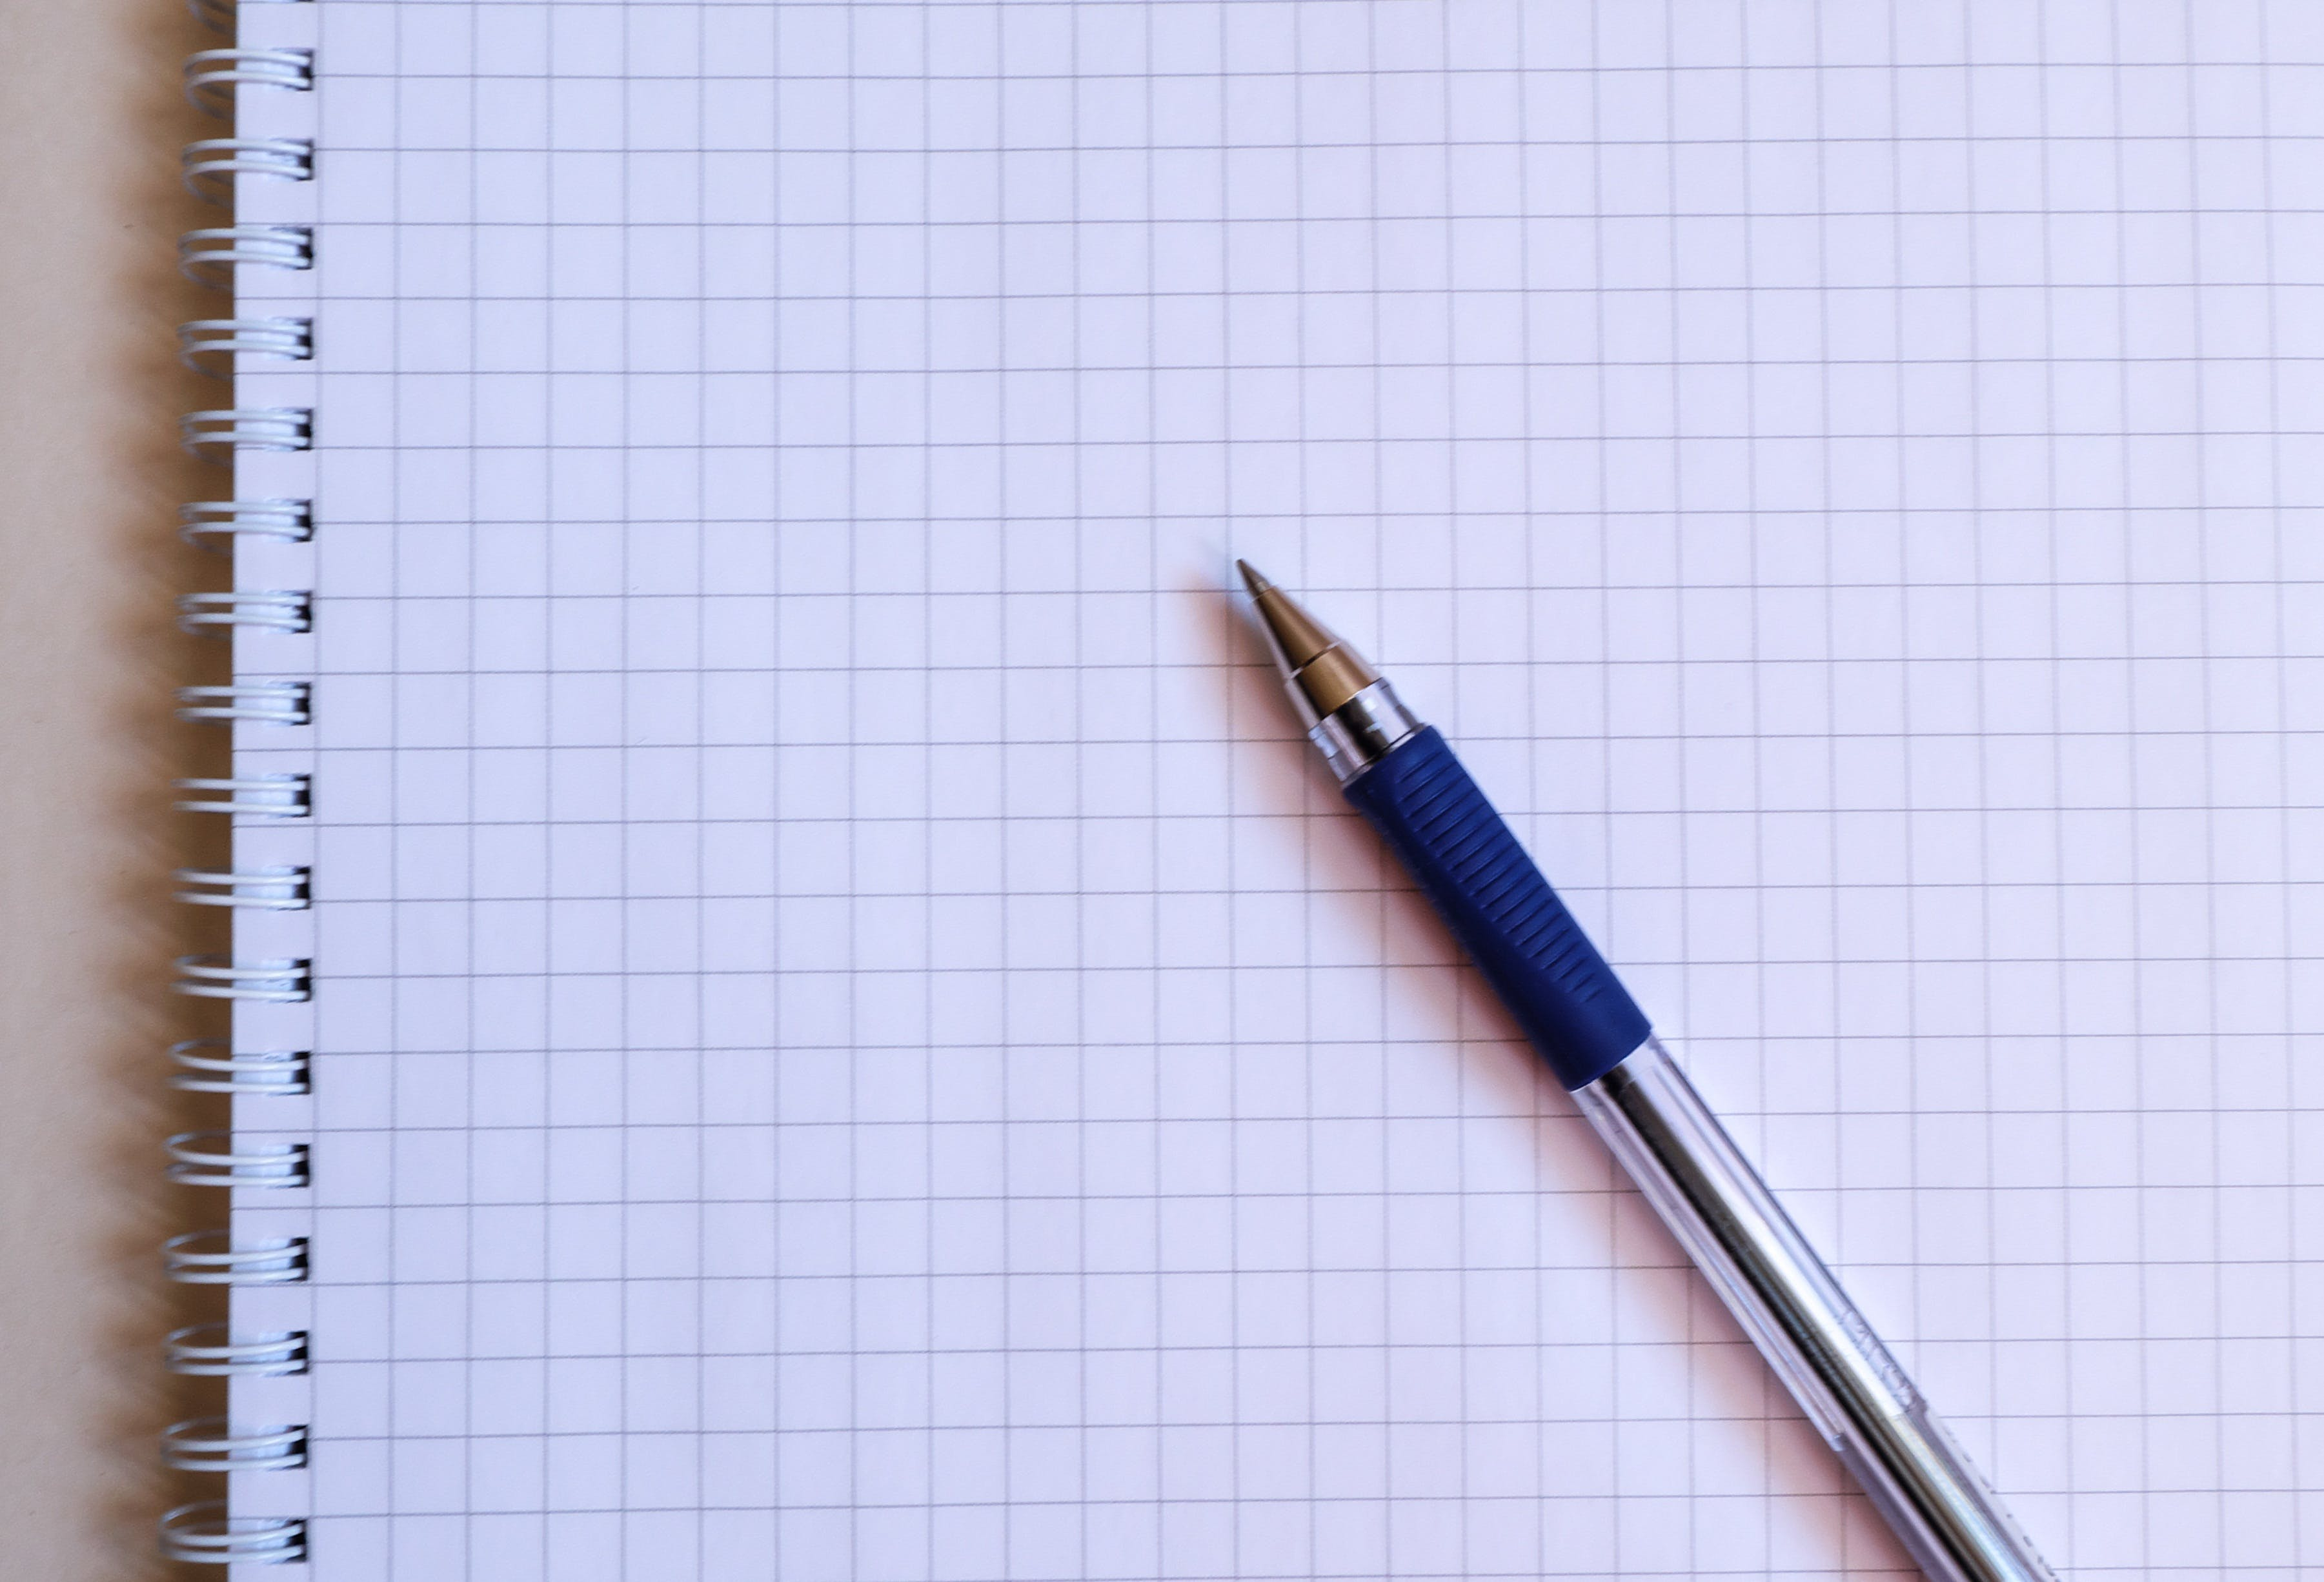 Clear and Blue Ballpoint Pen